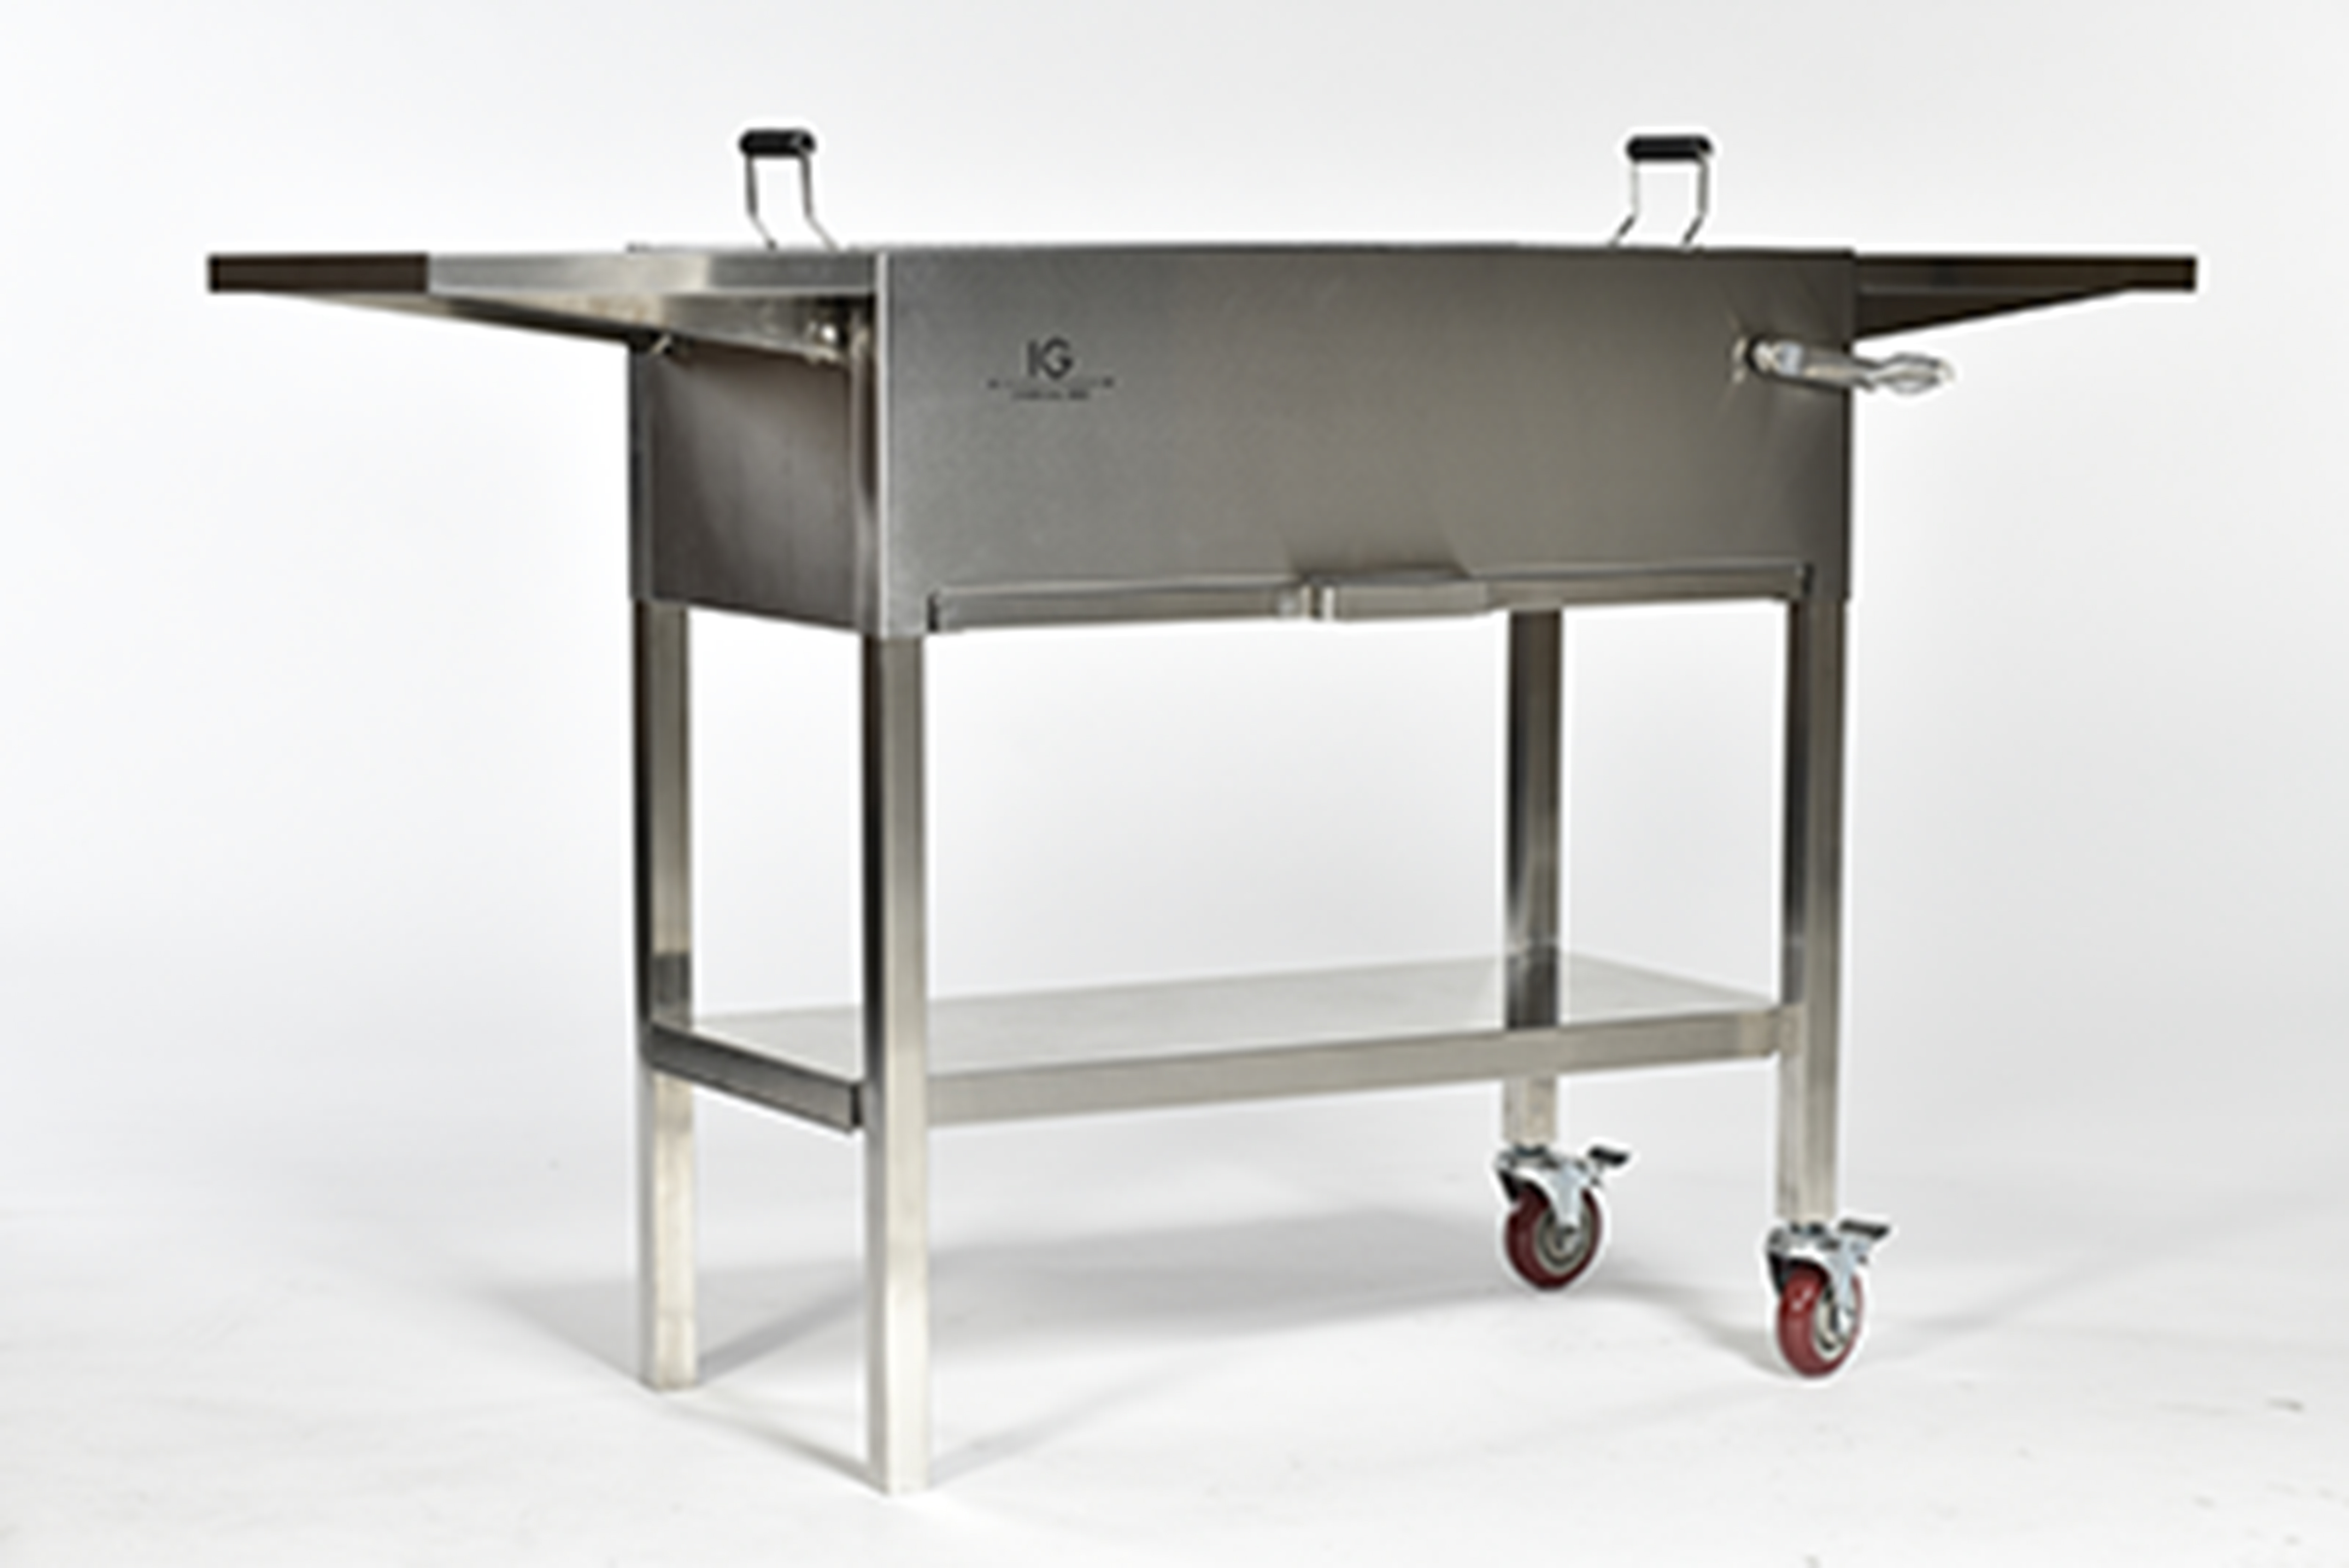 IG Charcoal BBQ YK-WD35-HNJA IG Stainless BBQ - Charcoal